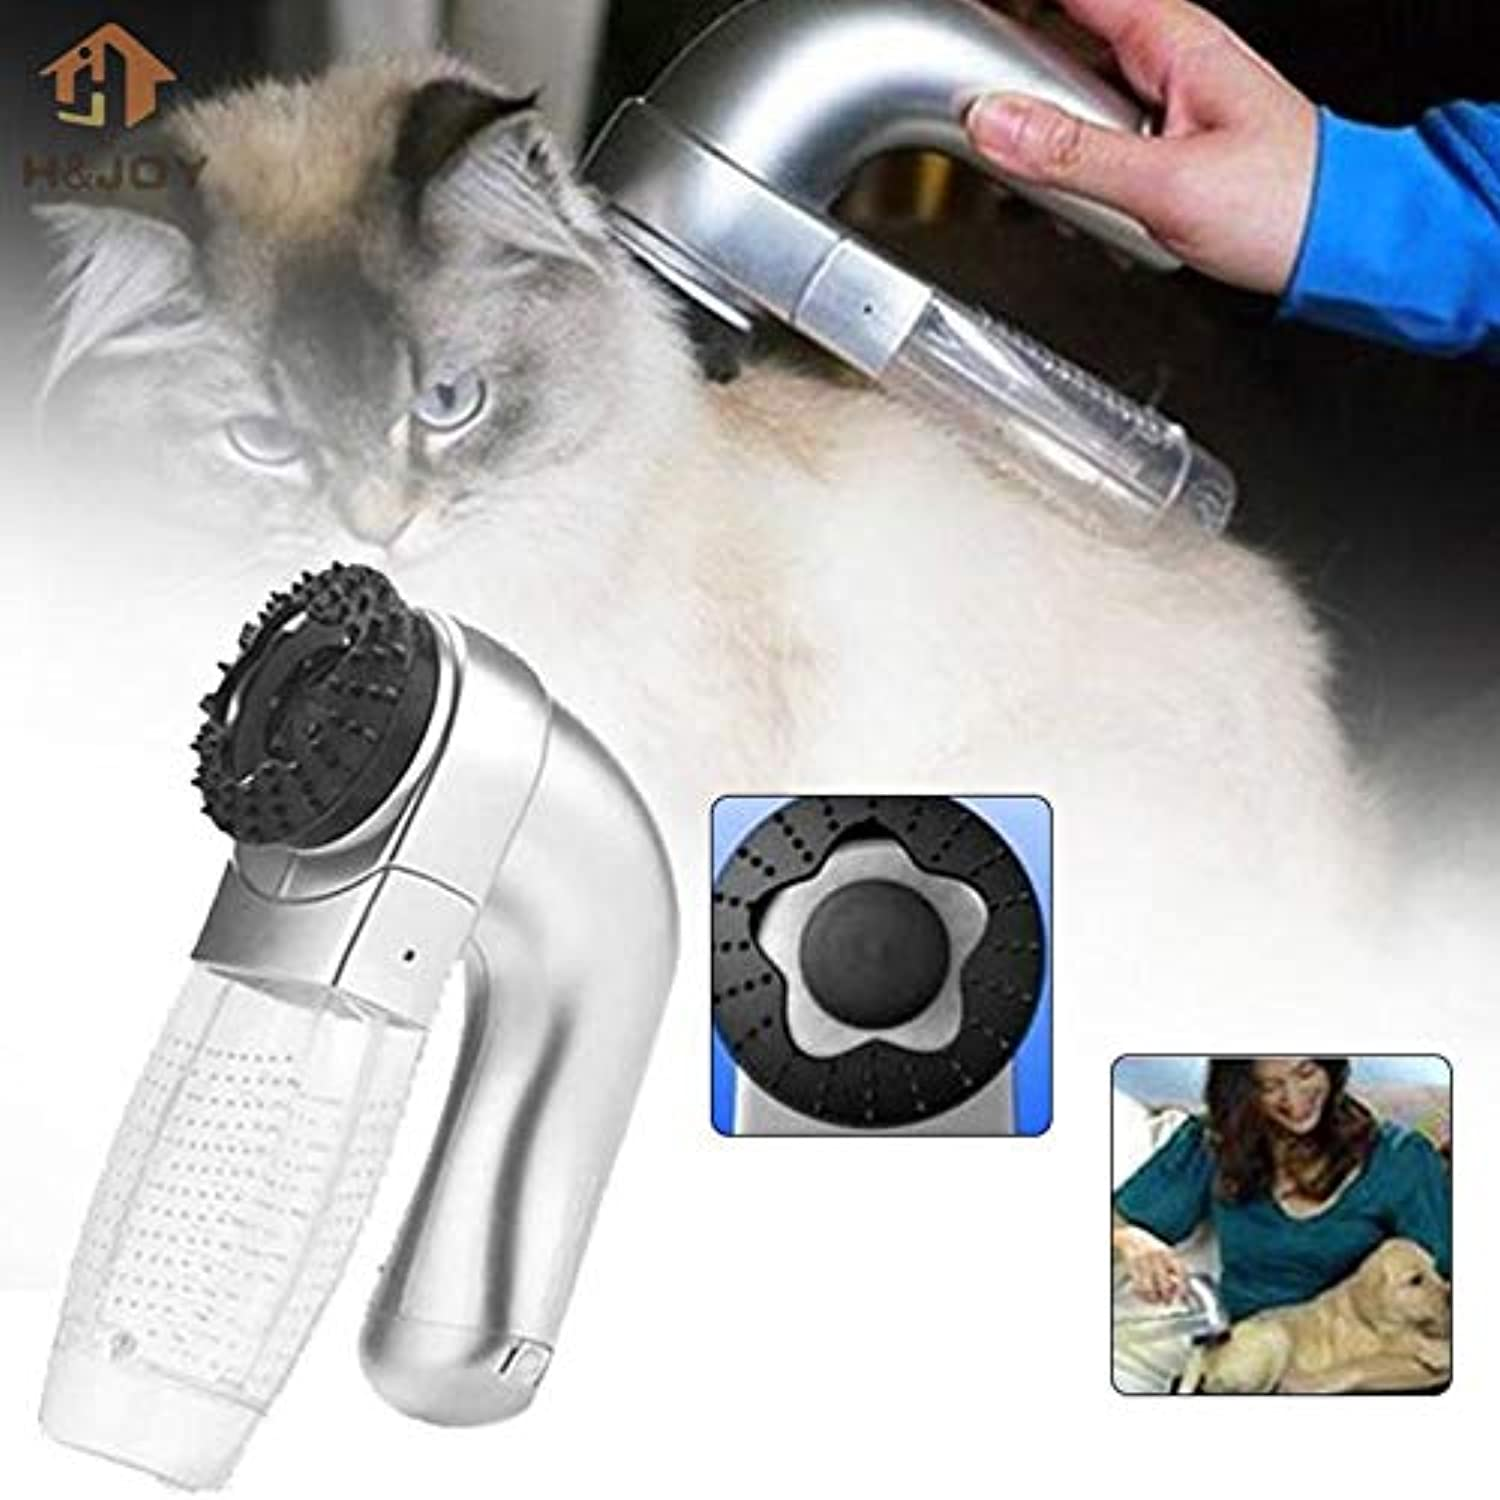 Shed Pal Electric Pet Vac Hair Remover Dog Supply Cat Grooming Vacuum Clean Fur Pet Product for Dog